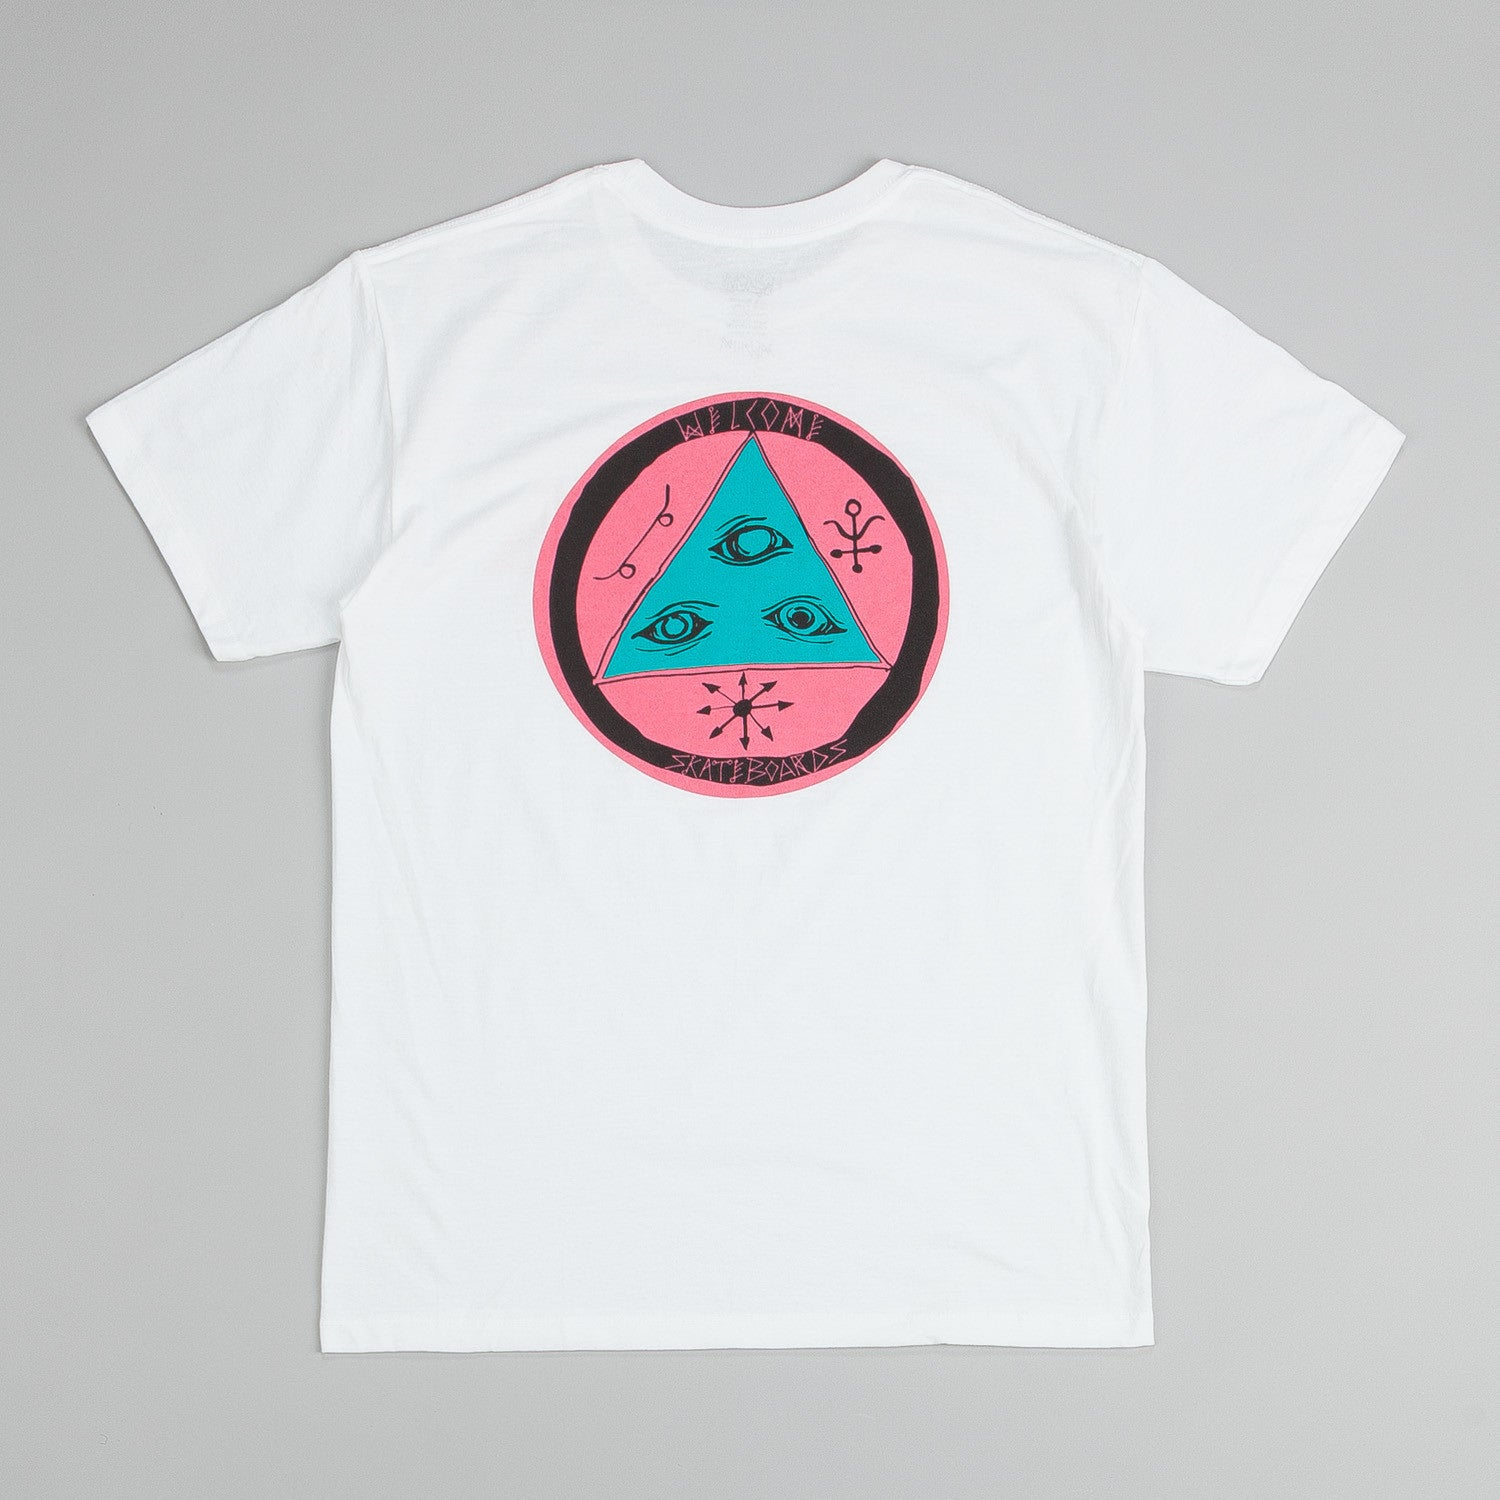 Welcome Talisman Discharge T Shirt White / Pink